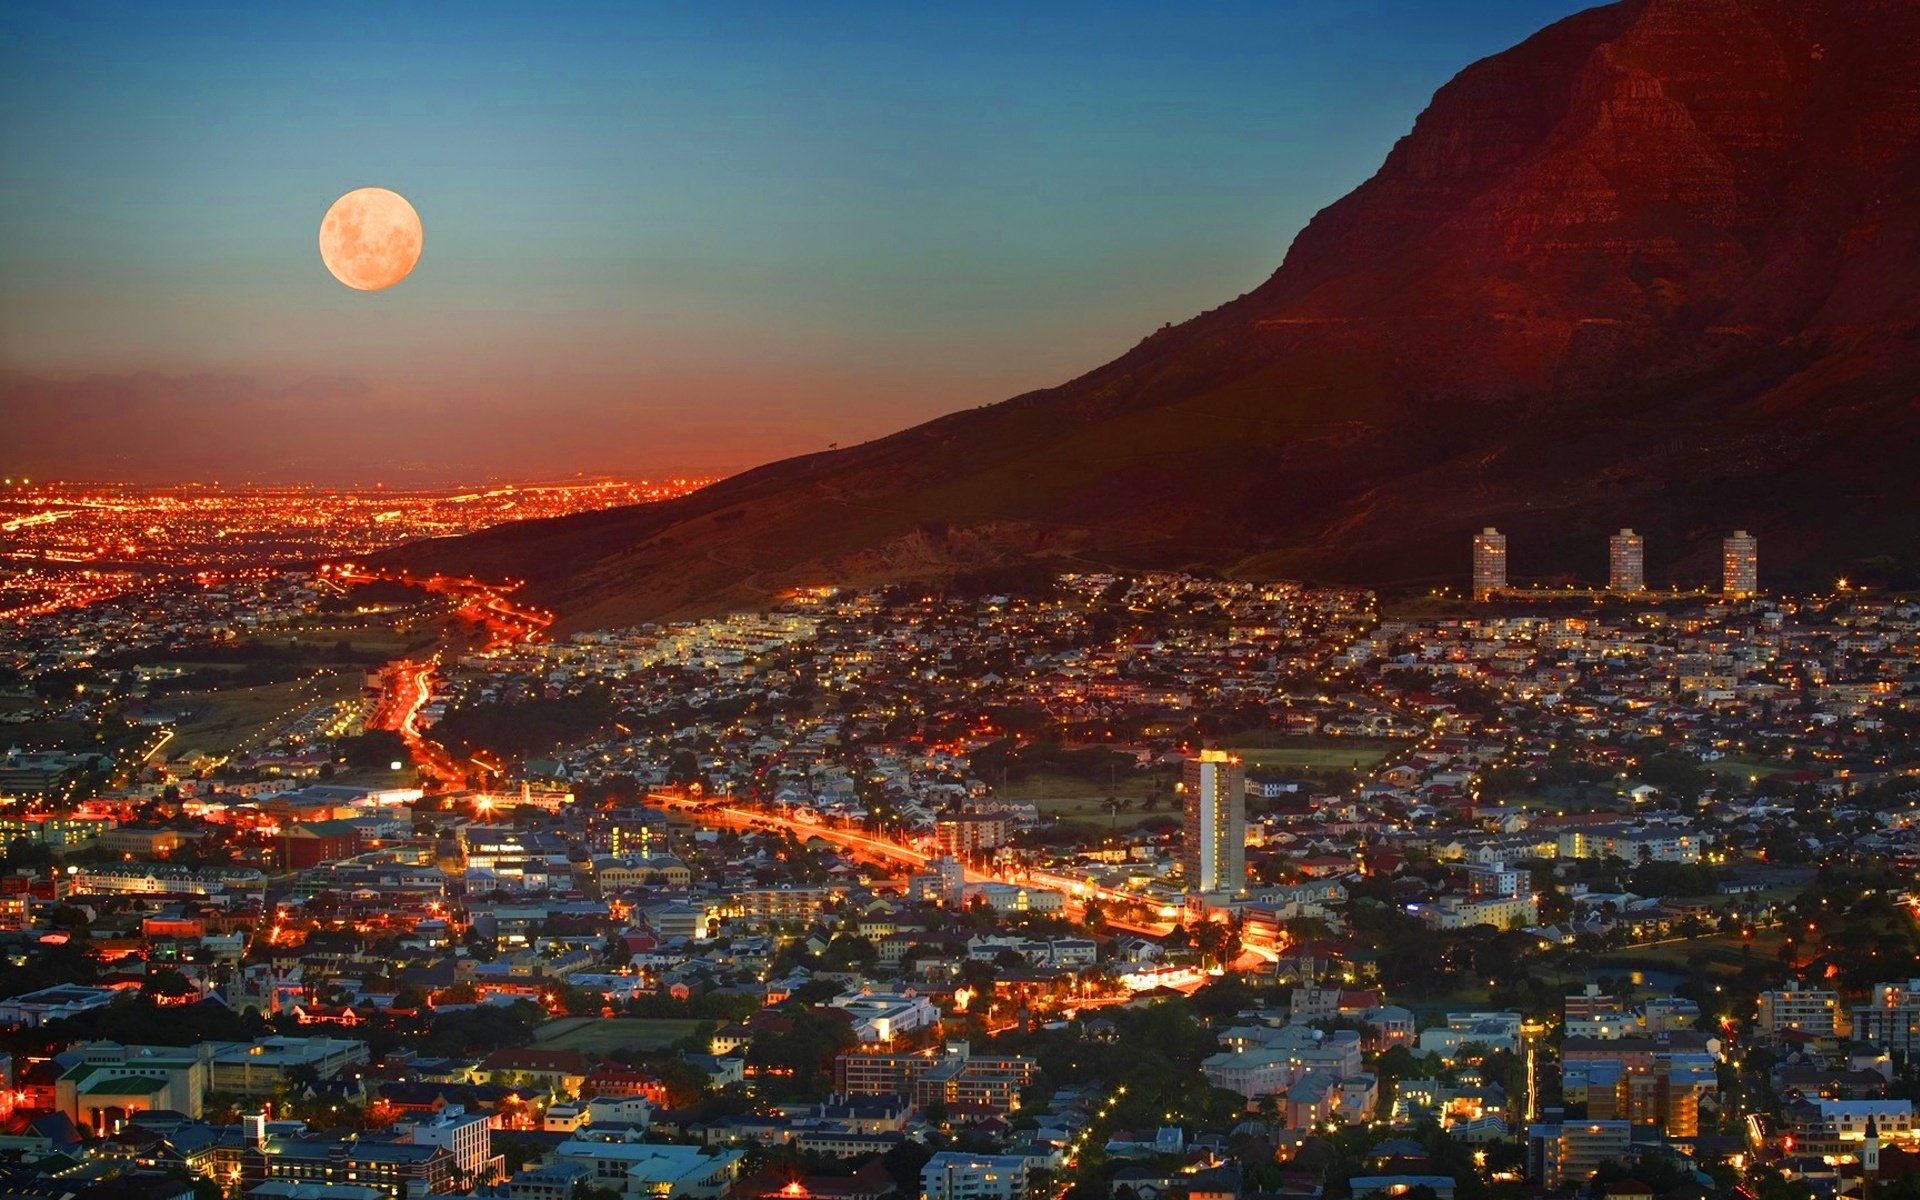 City Of Cape Town South Africa Wallpapers   1920x1200   858940 1920x1200